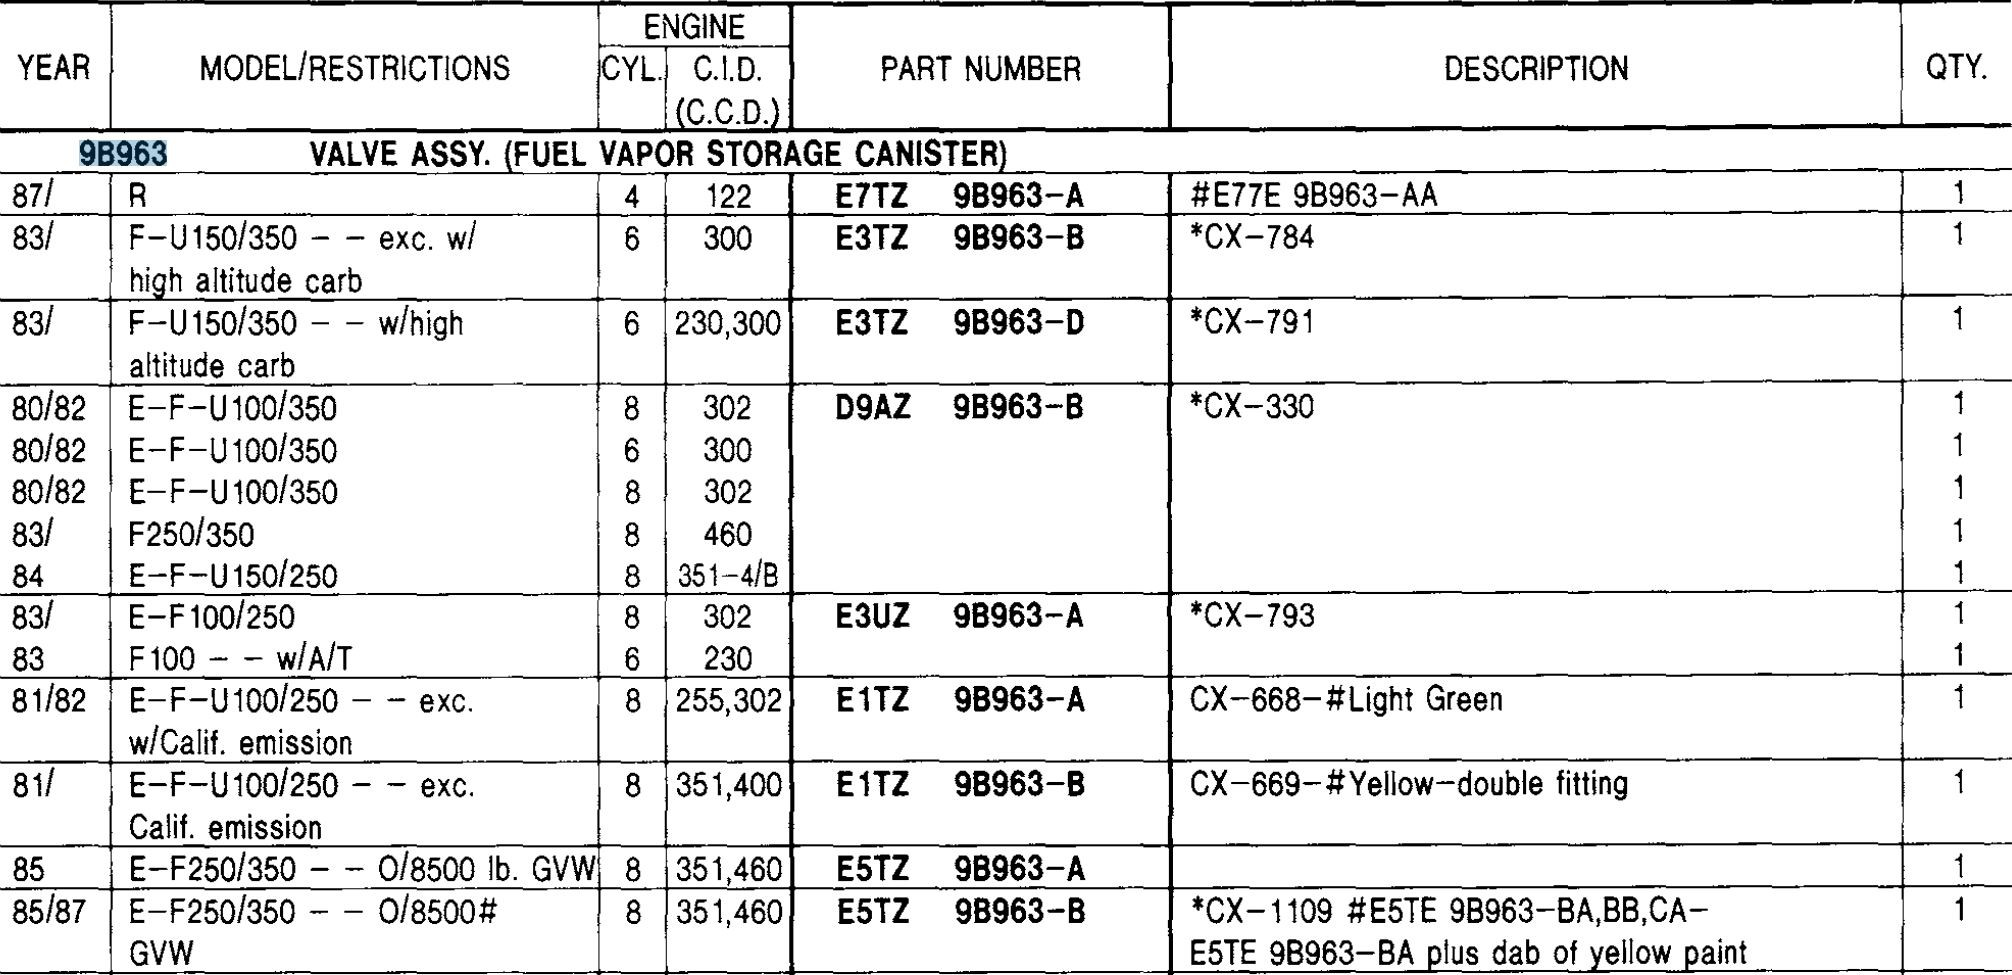 Vacuum Hose Routing Diagram 1986 ford F150 Bullnose Enthusiasts forum Vacuum Line Routing Help Needed Of Vacuum Hose Routing Diagram 1986 ford F150